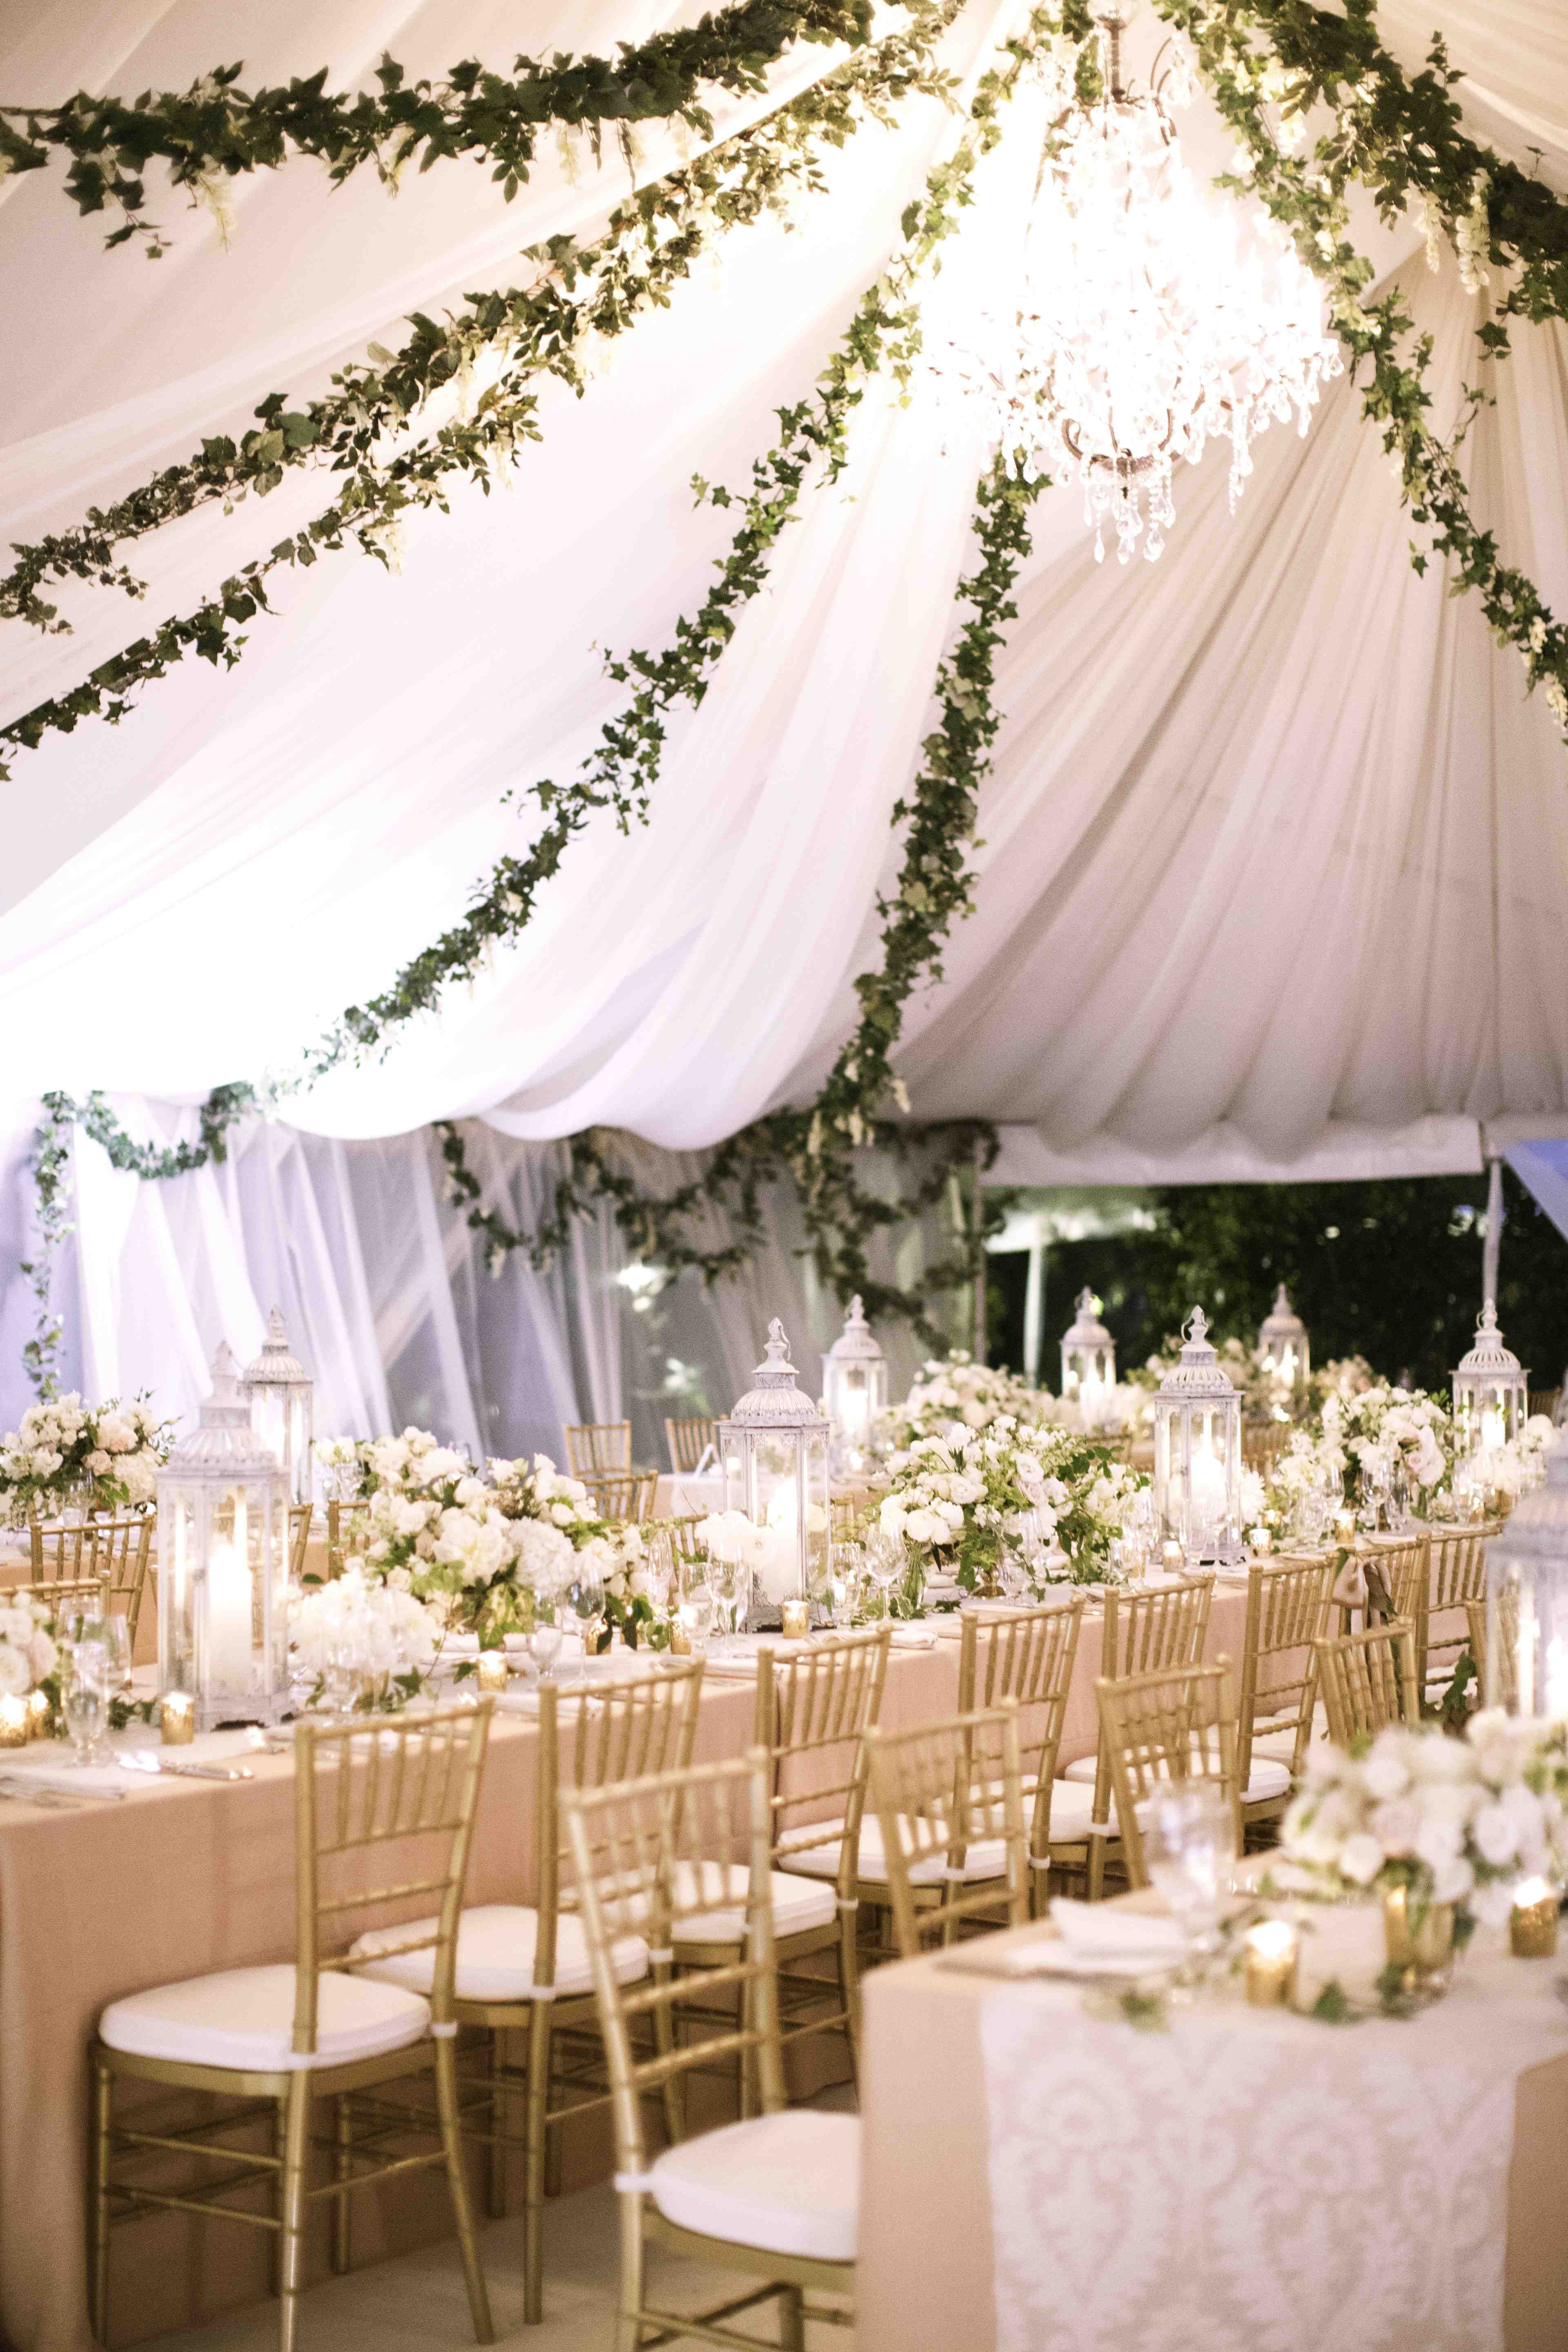 Stunning tent and decor (Erin Fetherston's wedding